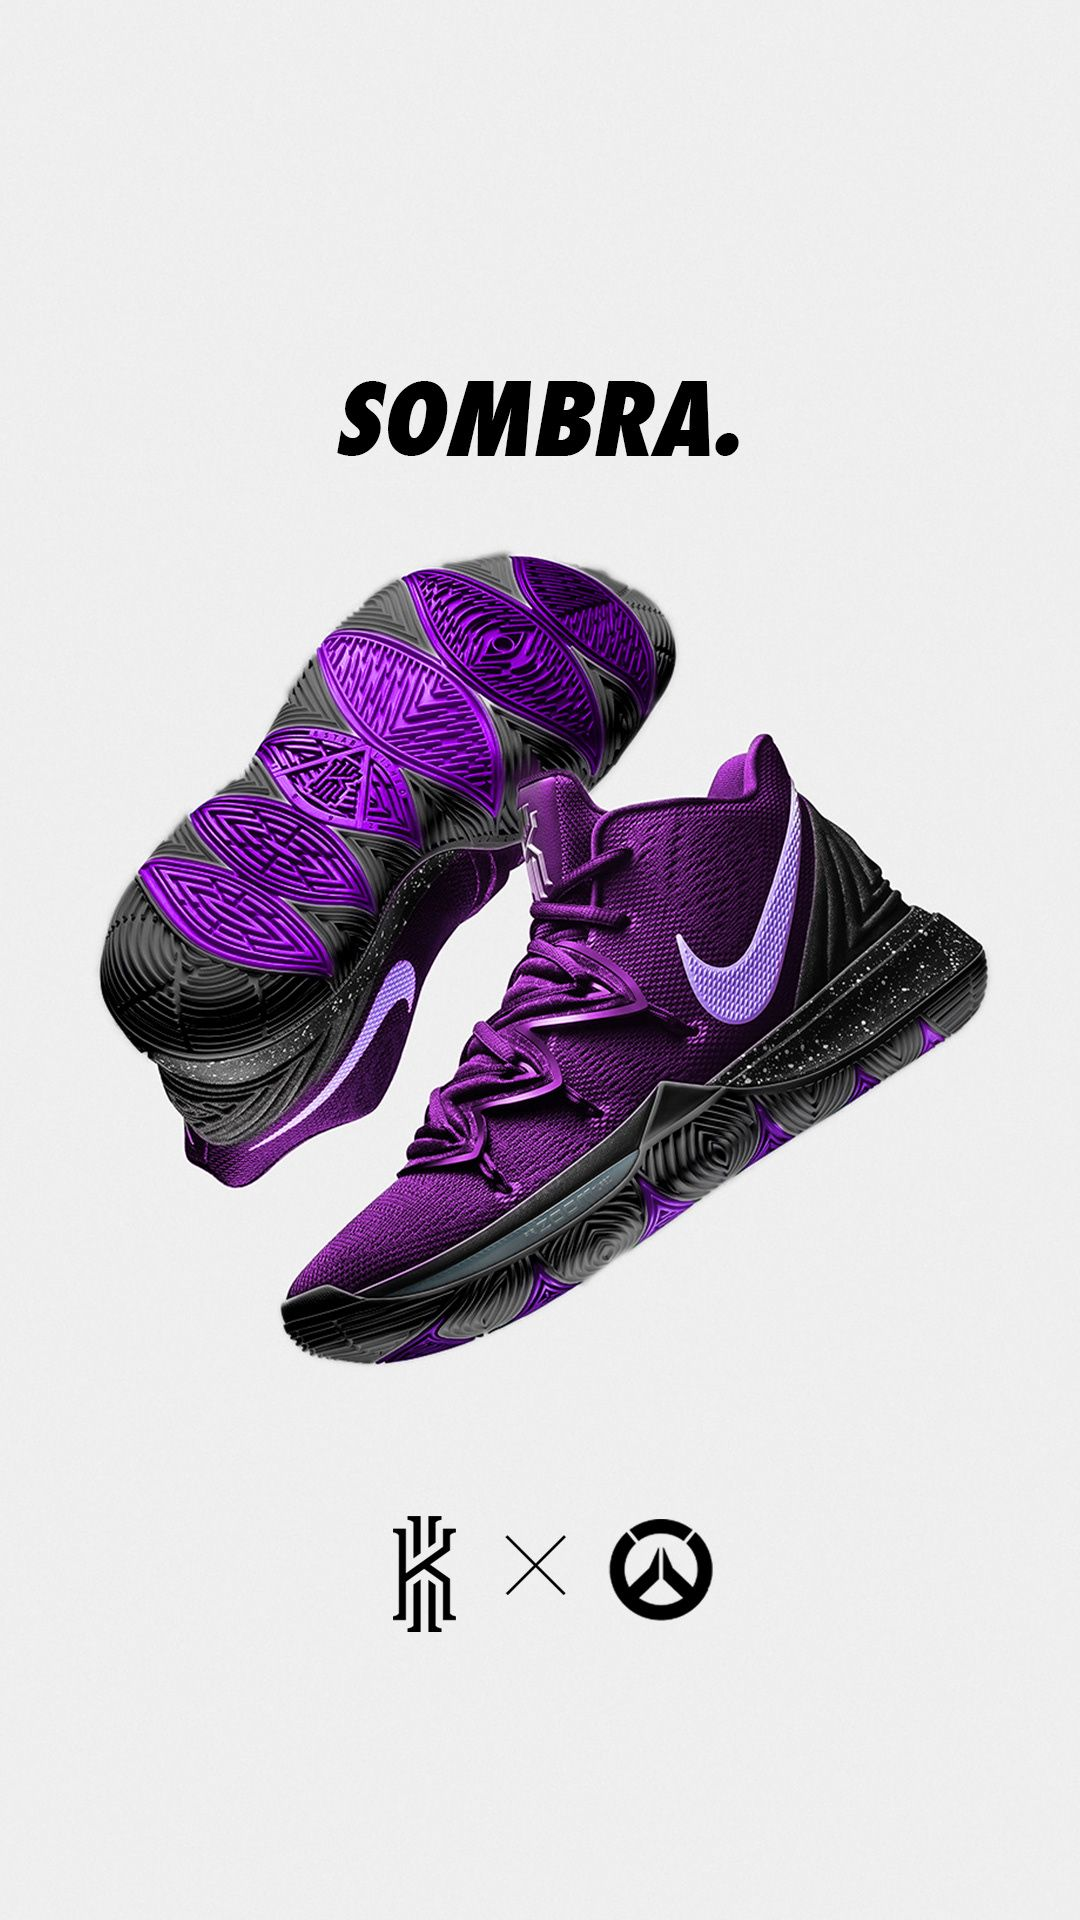 c9fcdcbb6ad Nike Kyrie 5 X Overwatch Concepts on Behance